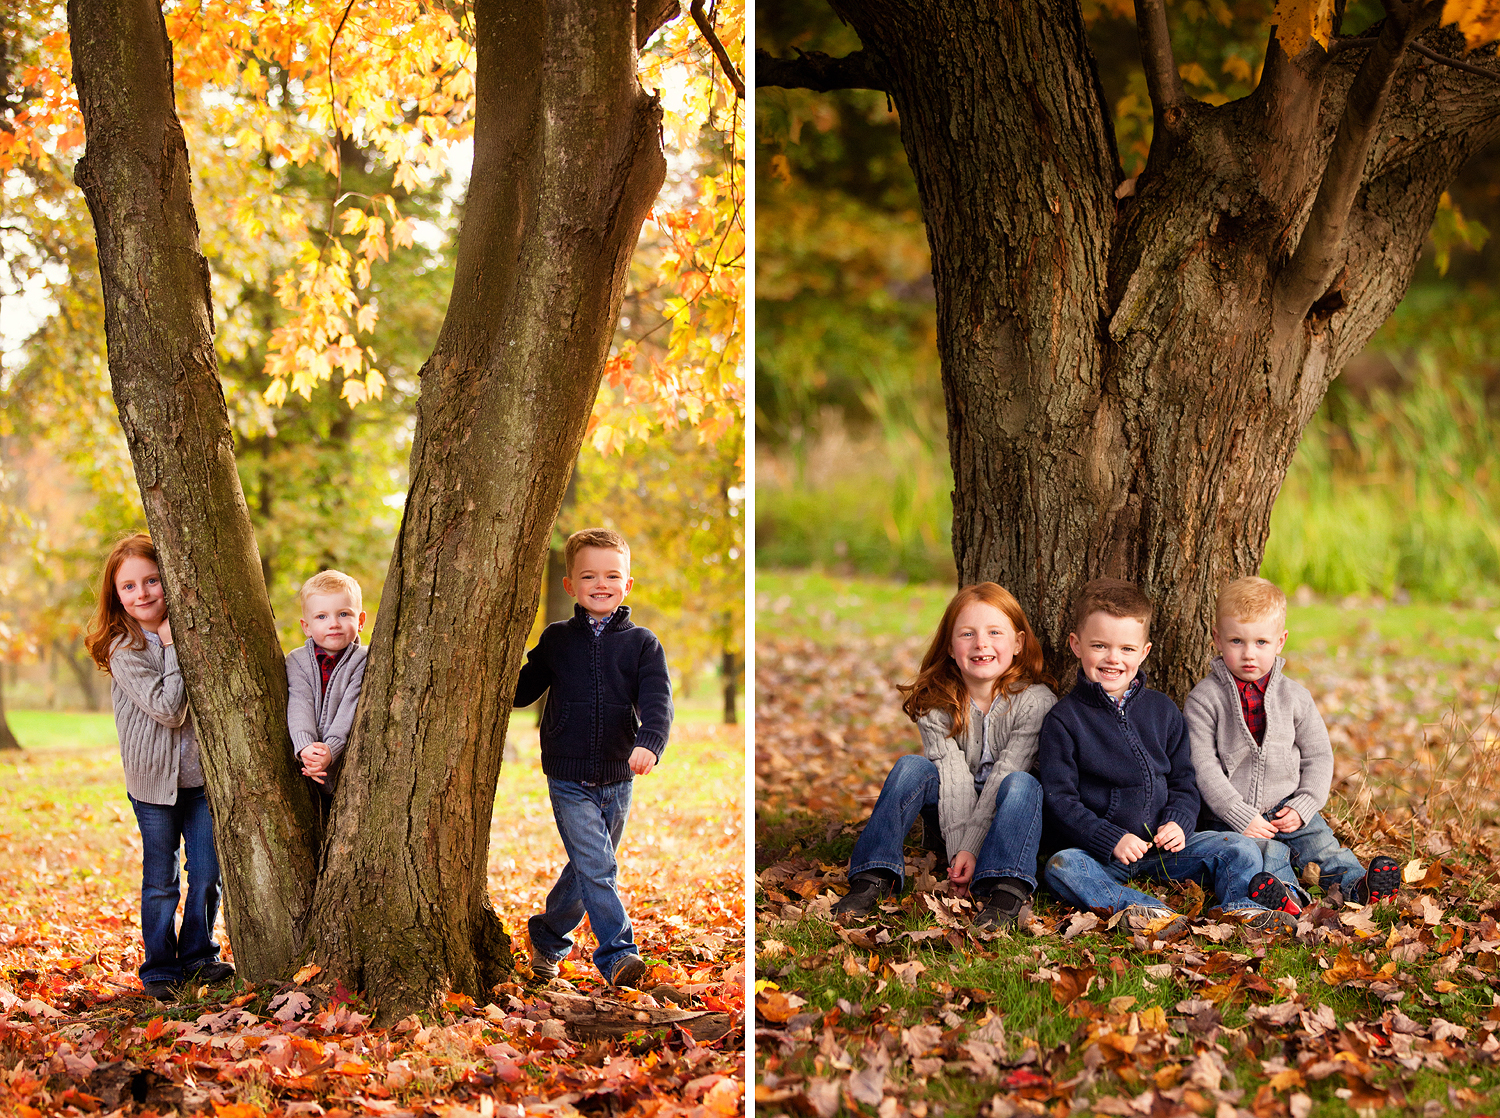 childrens-outdoor-photography-cleveland-akron-canton.jpg